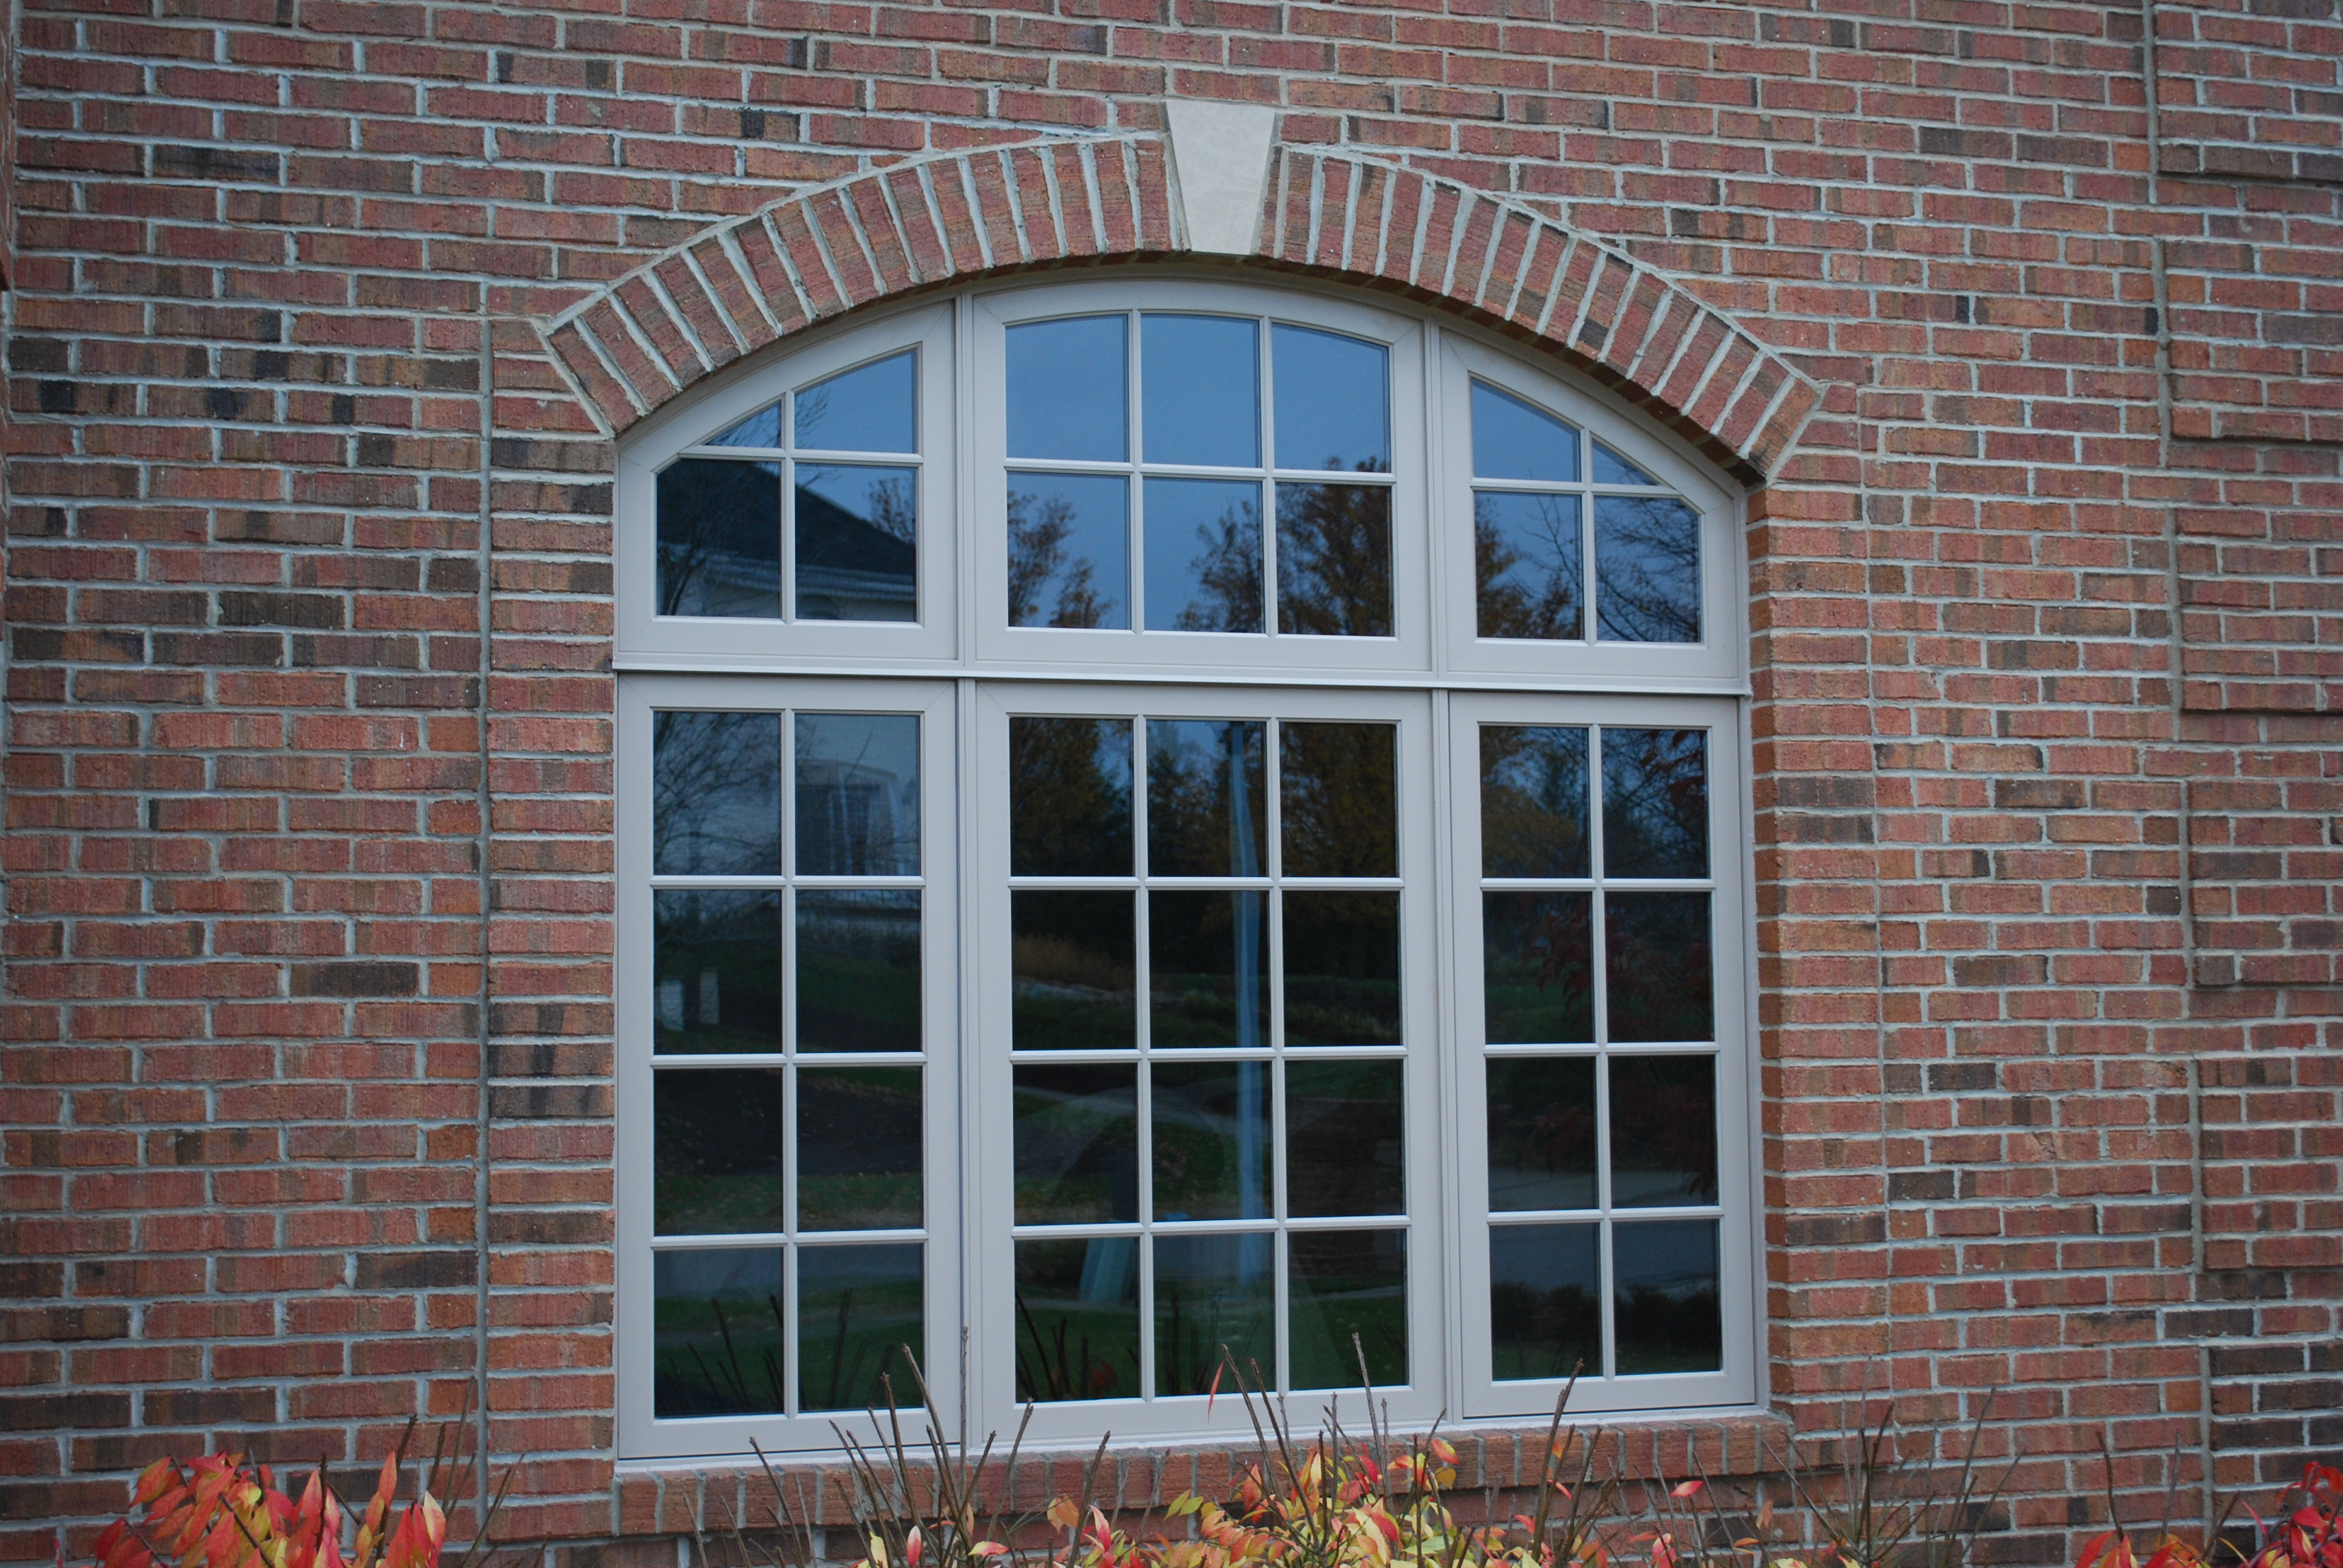 Advanced window door elizabeth pa 15037 angie 39 s list for Custom replacement windows